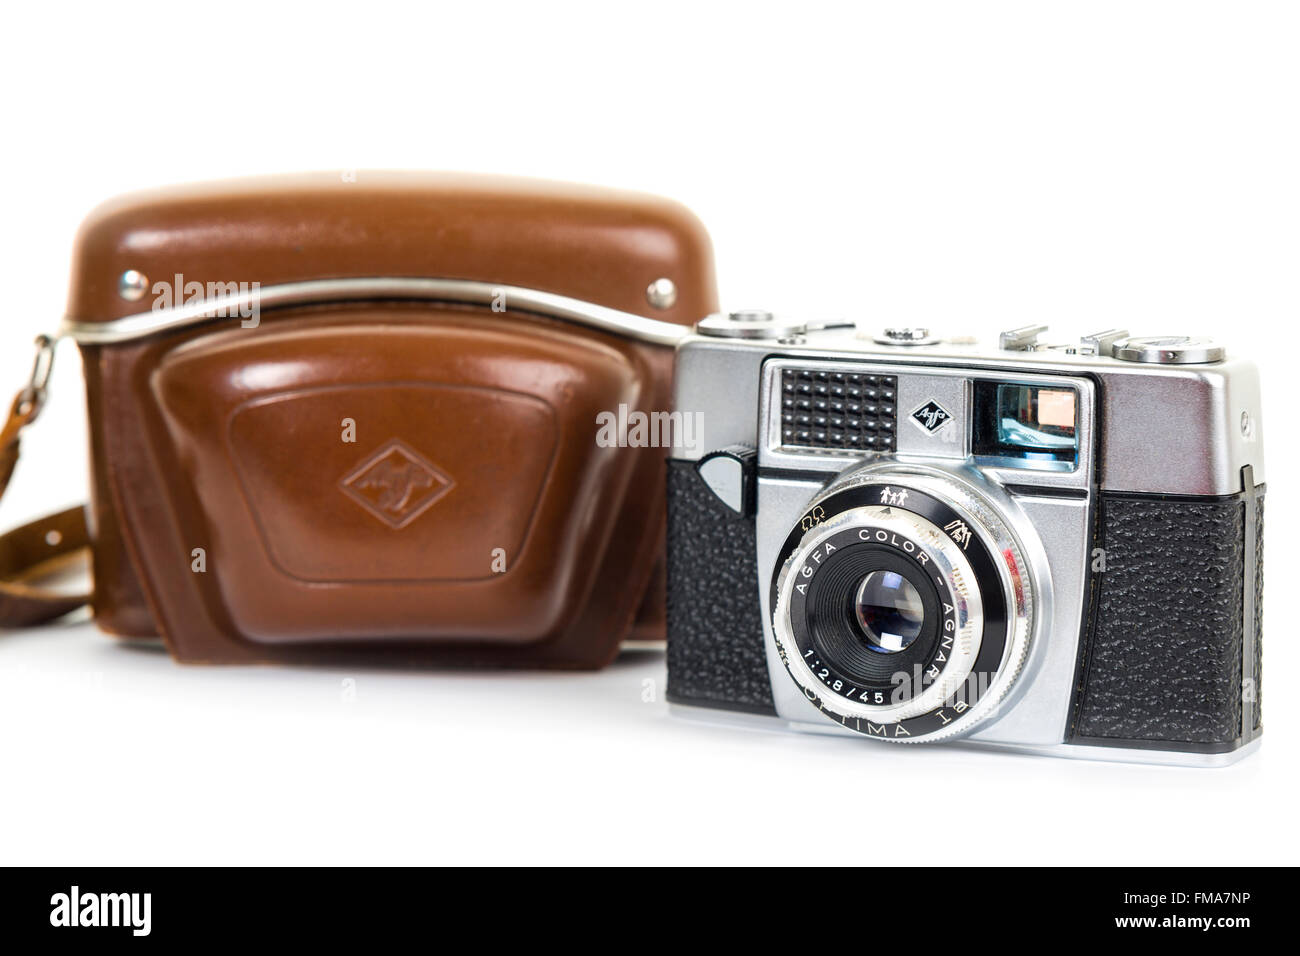 Agfa Optima vintage analogue 35mm film camera from the early 1960s isolated on white background - Stock Image